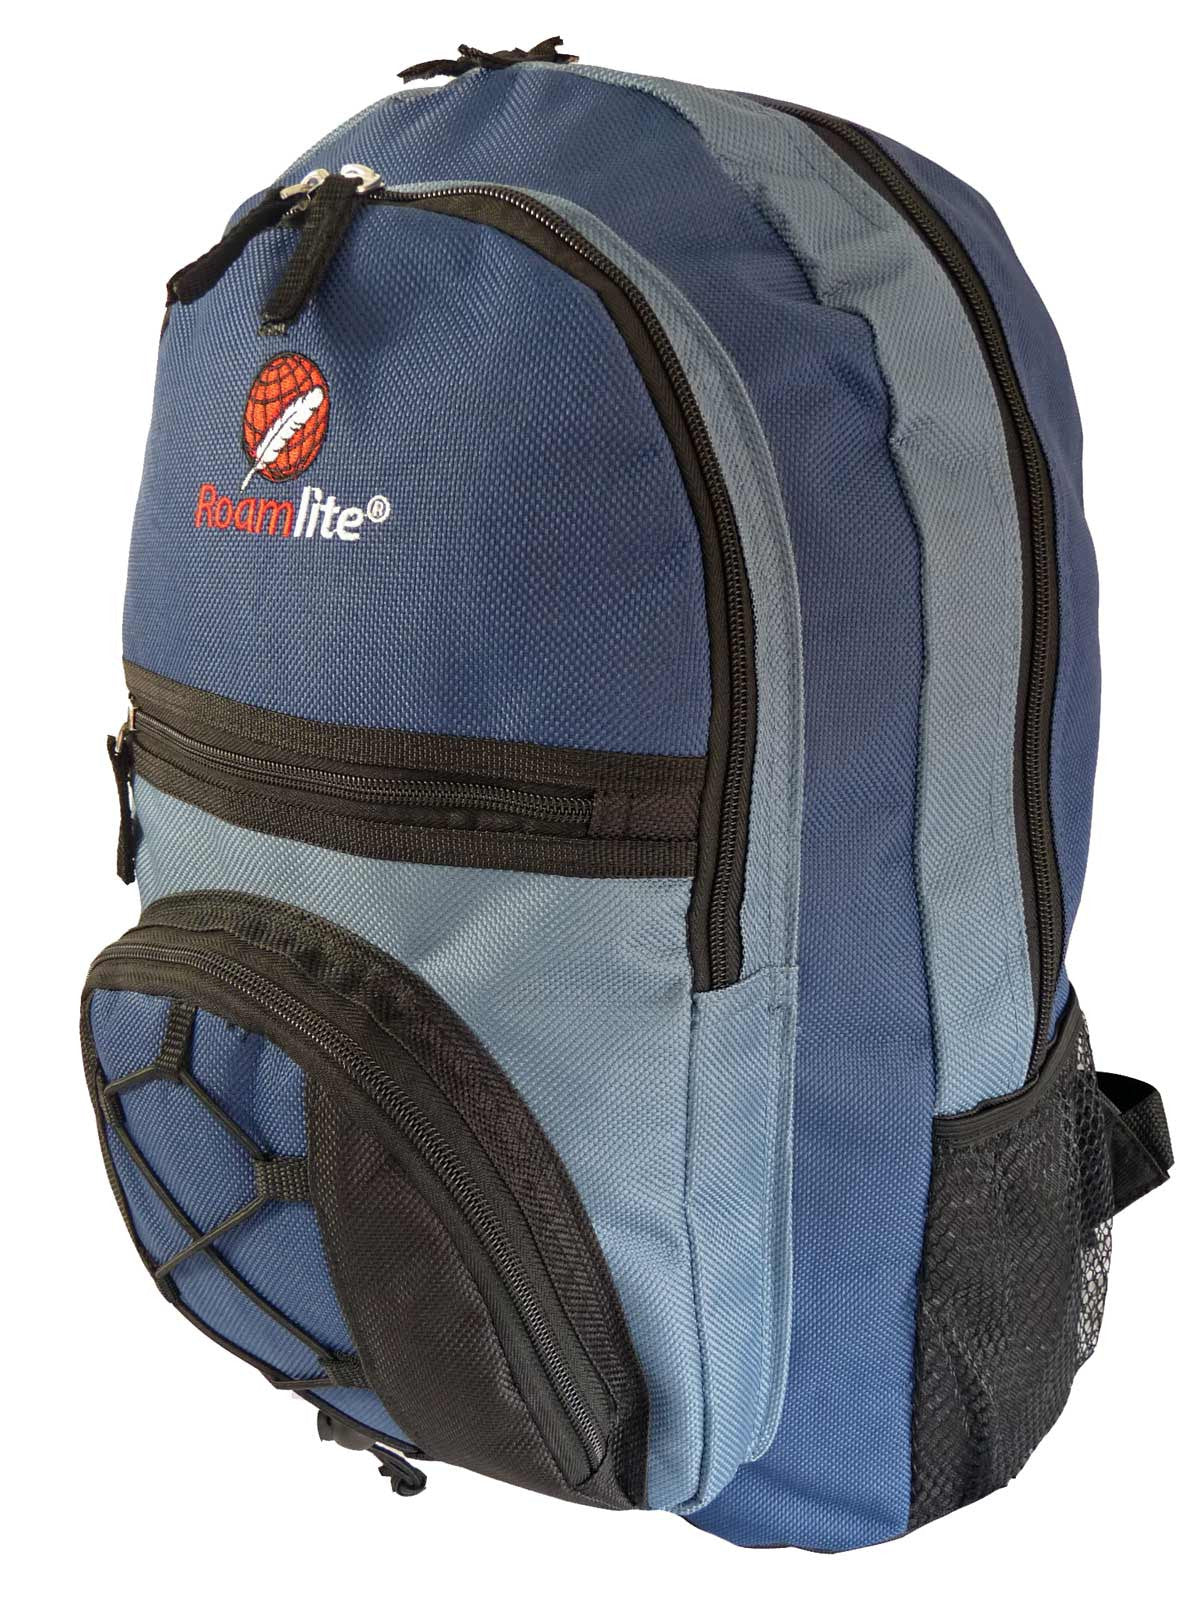 Kids School Bags RL37M Dark Blue Side View